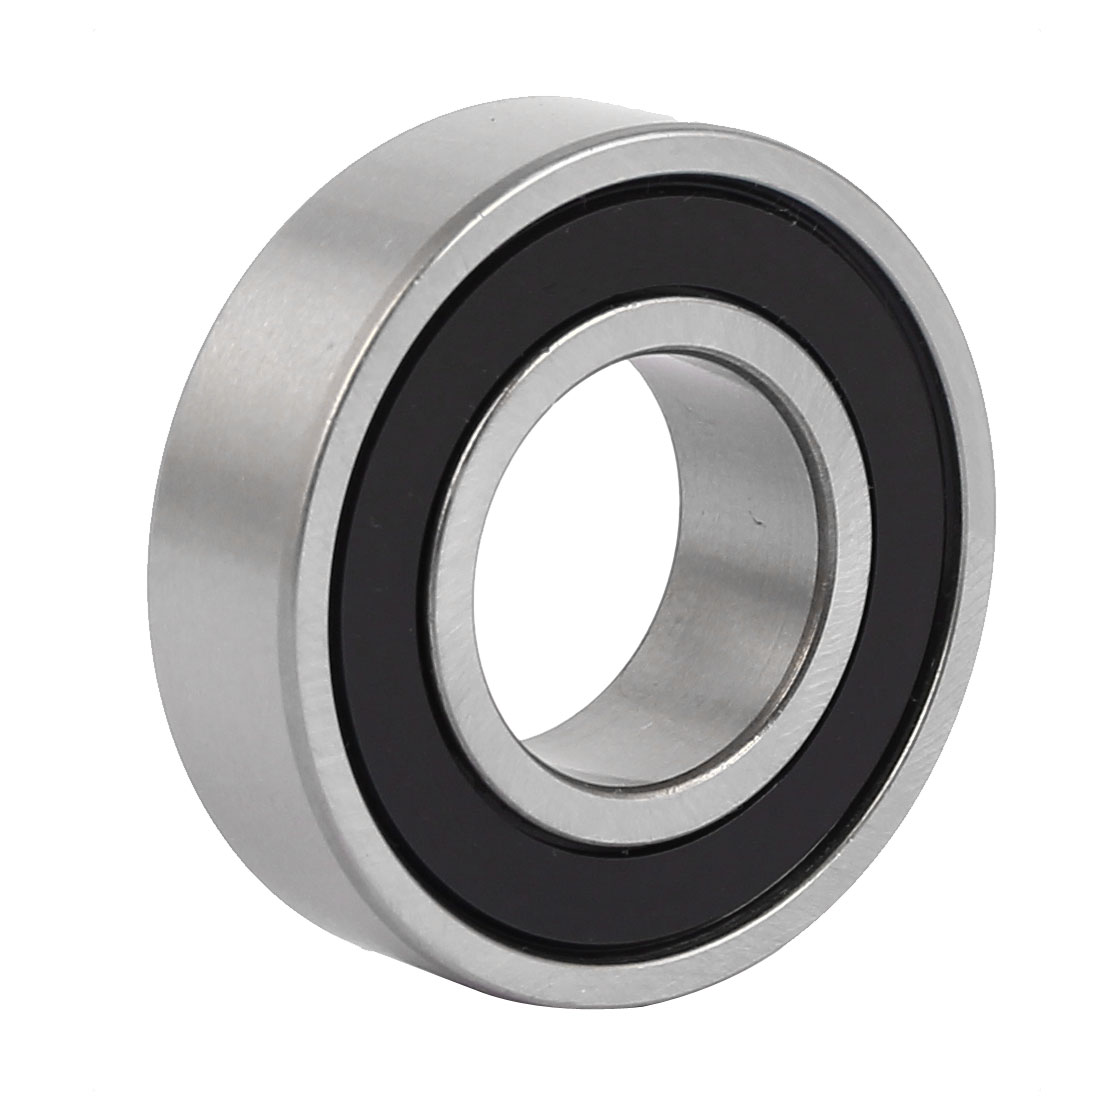 47mm x 25mm x 12mm Dual Side Sealed Deep Groove Ball Bearing